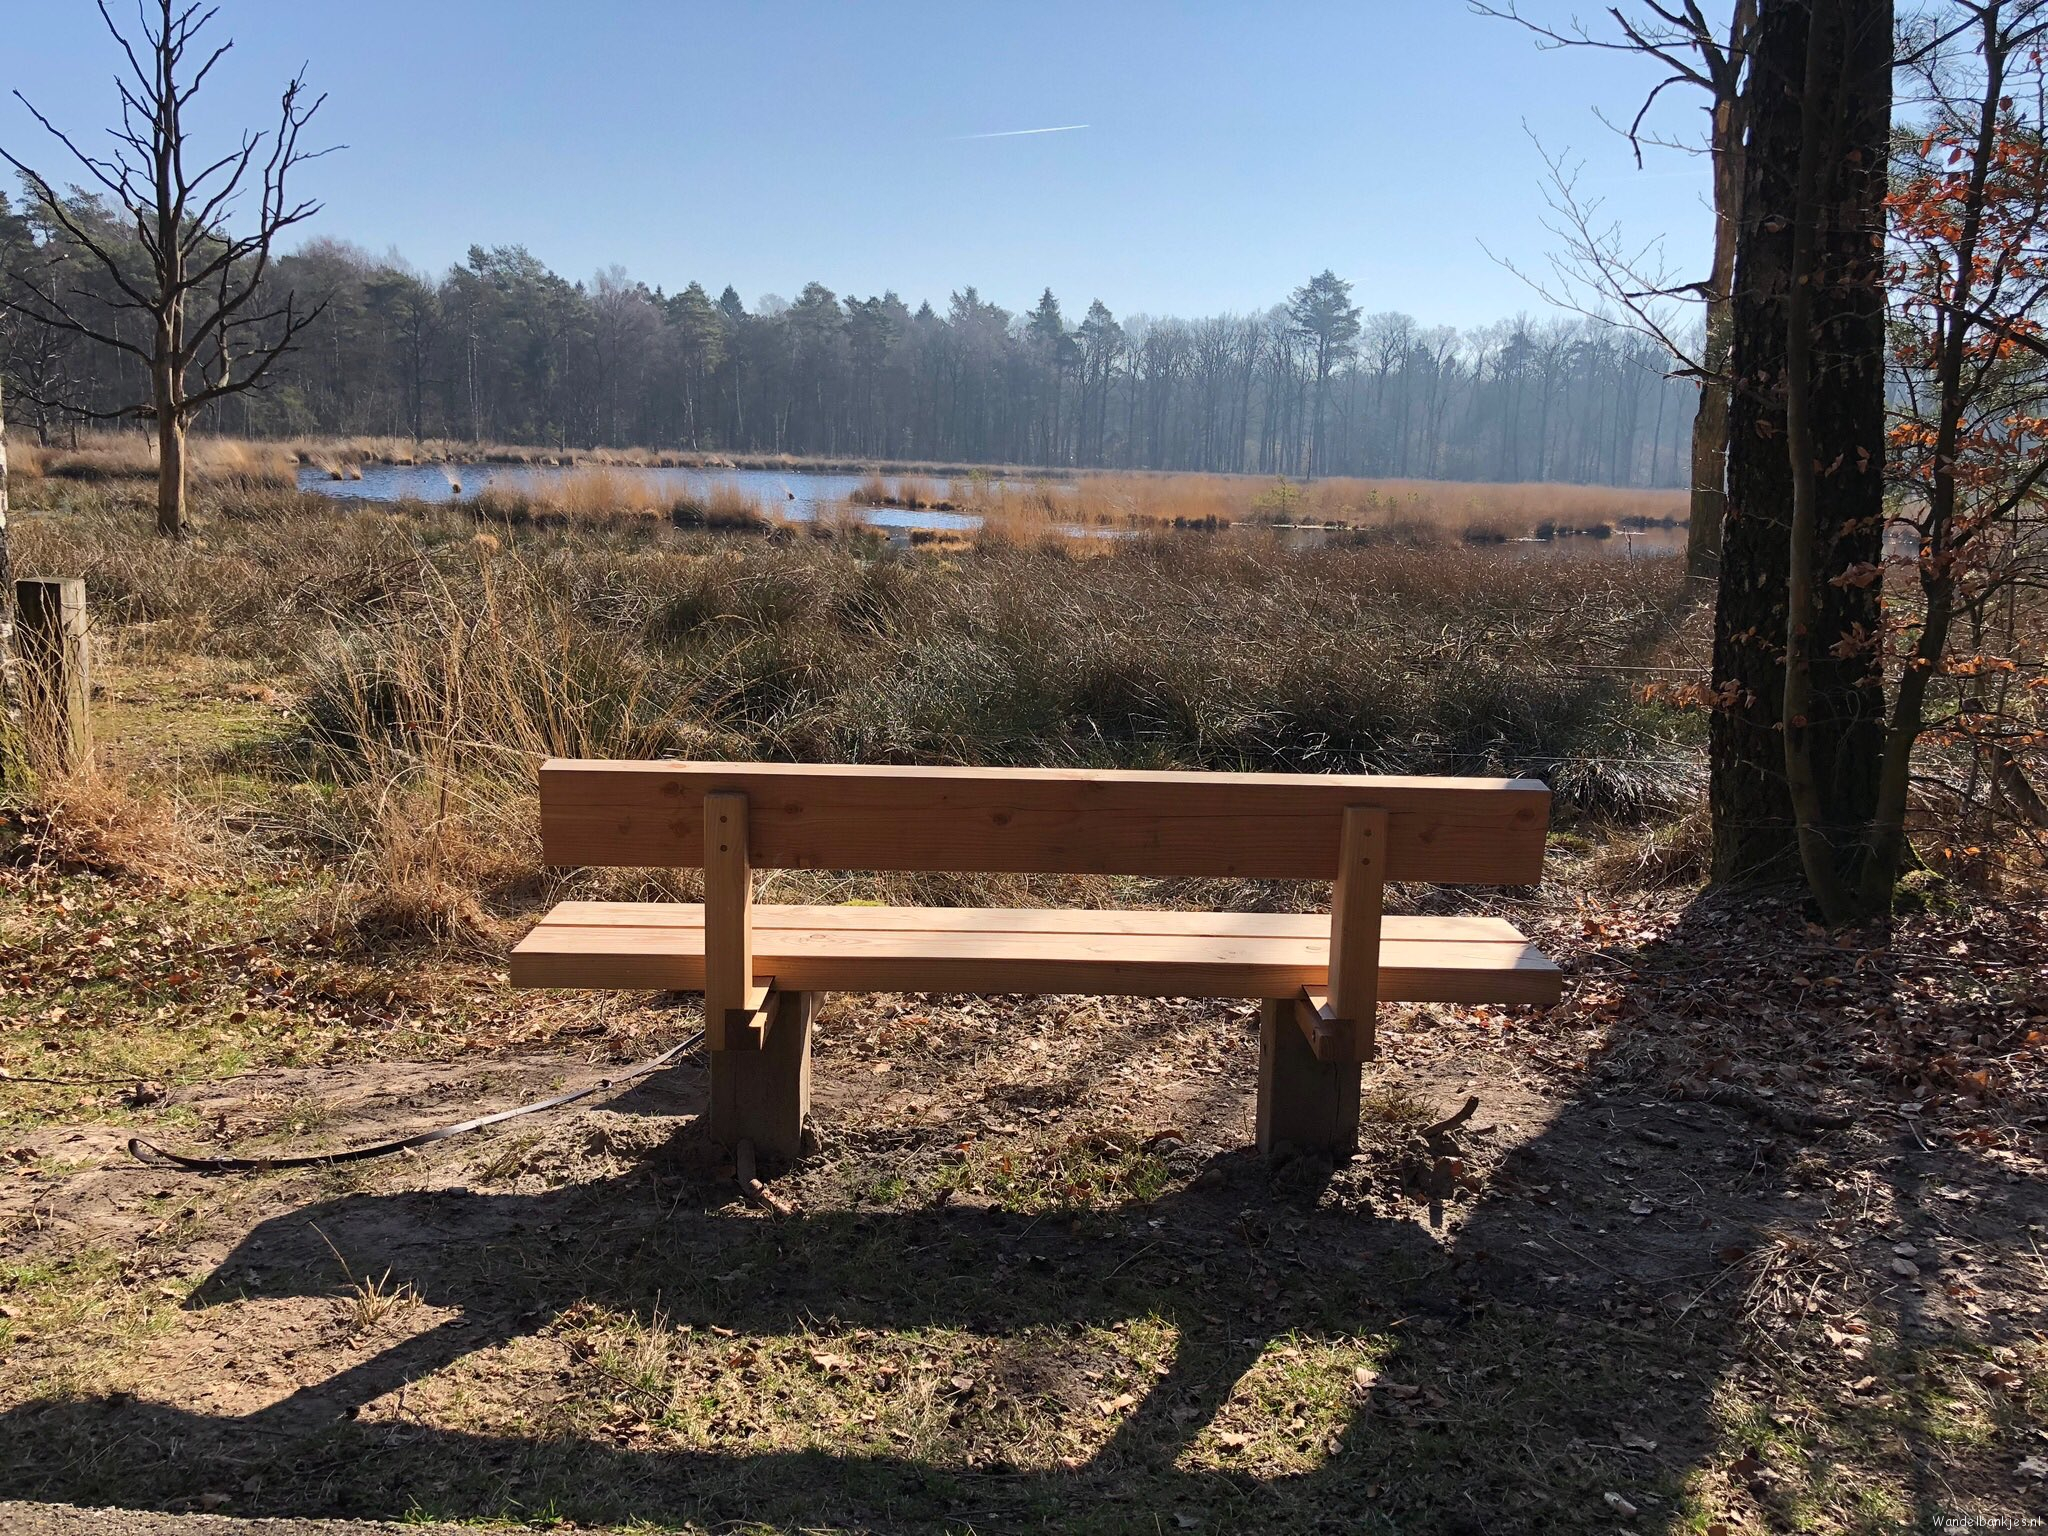 rt-gertientje-on-a-beautiful-place-in-forest-gees-a-bench-spotted-walking-benches-walkersbenches-https-t-co-npkcx2yif7